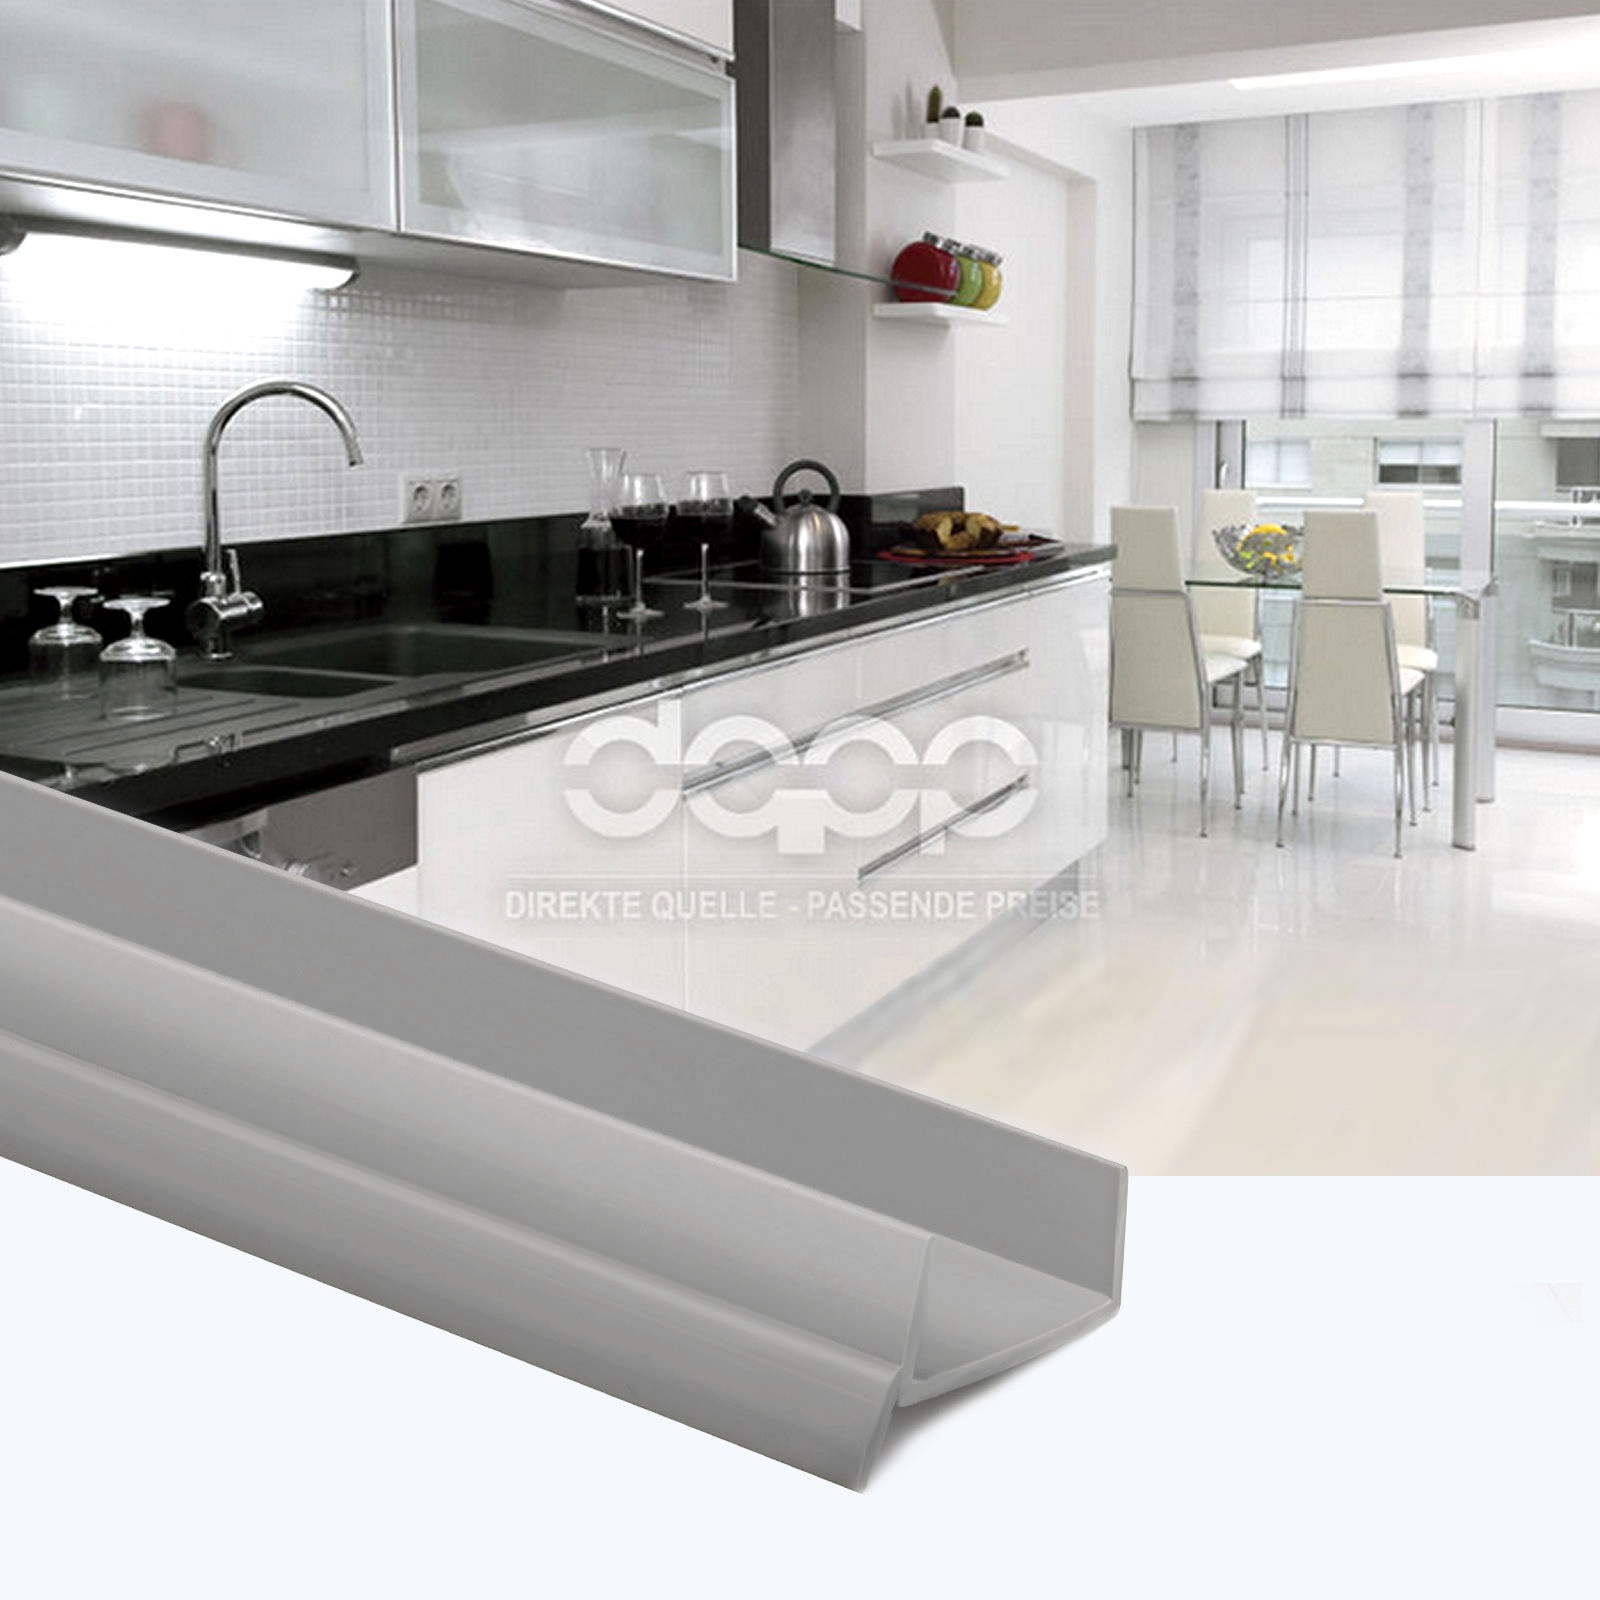 Transparent 1 5m 18mm Bavette De Plinthes Cuisine Mdf Protection Ar Tes Humidit Ebay